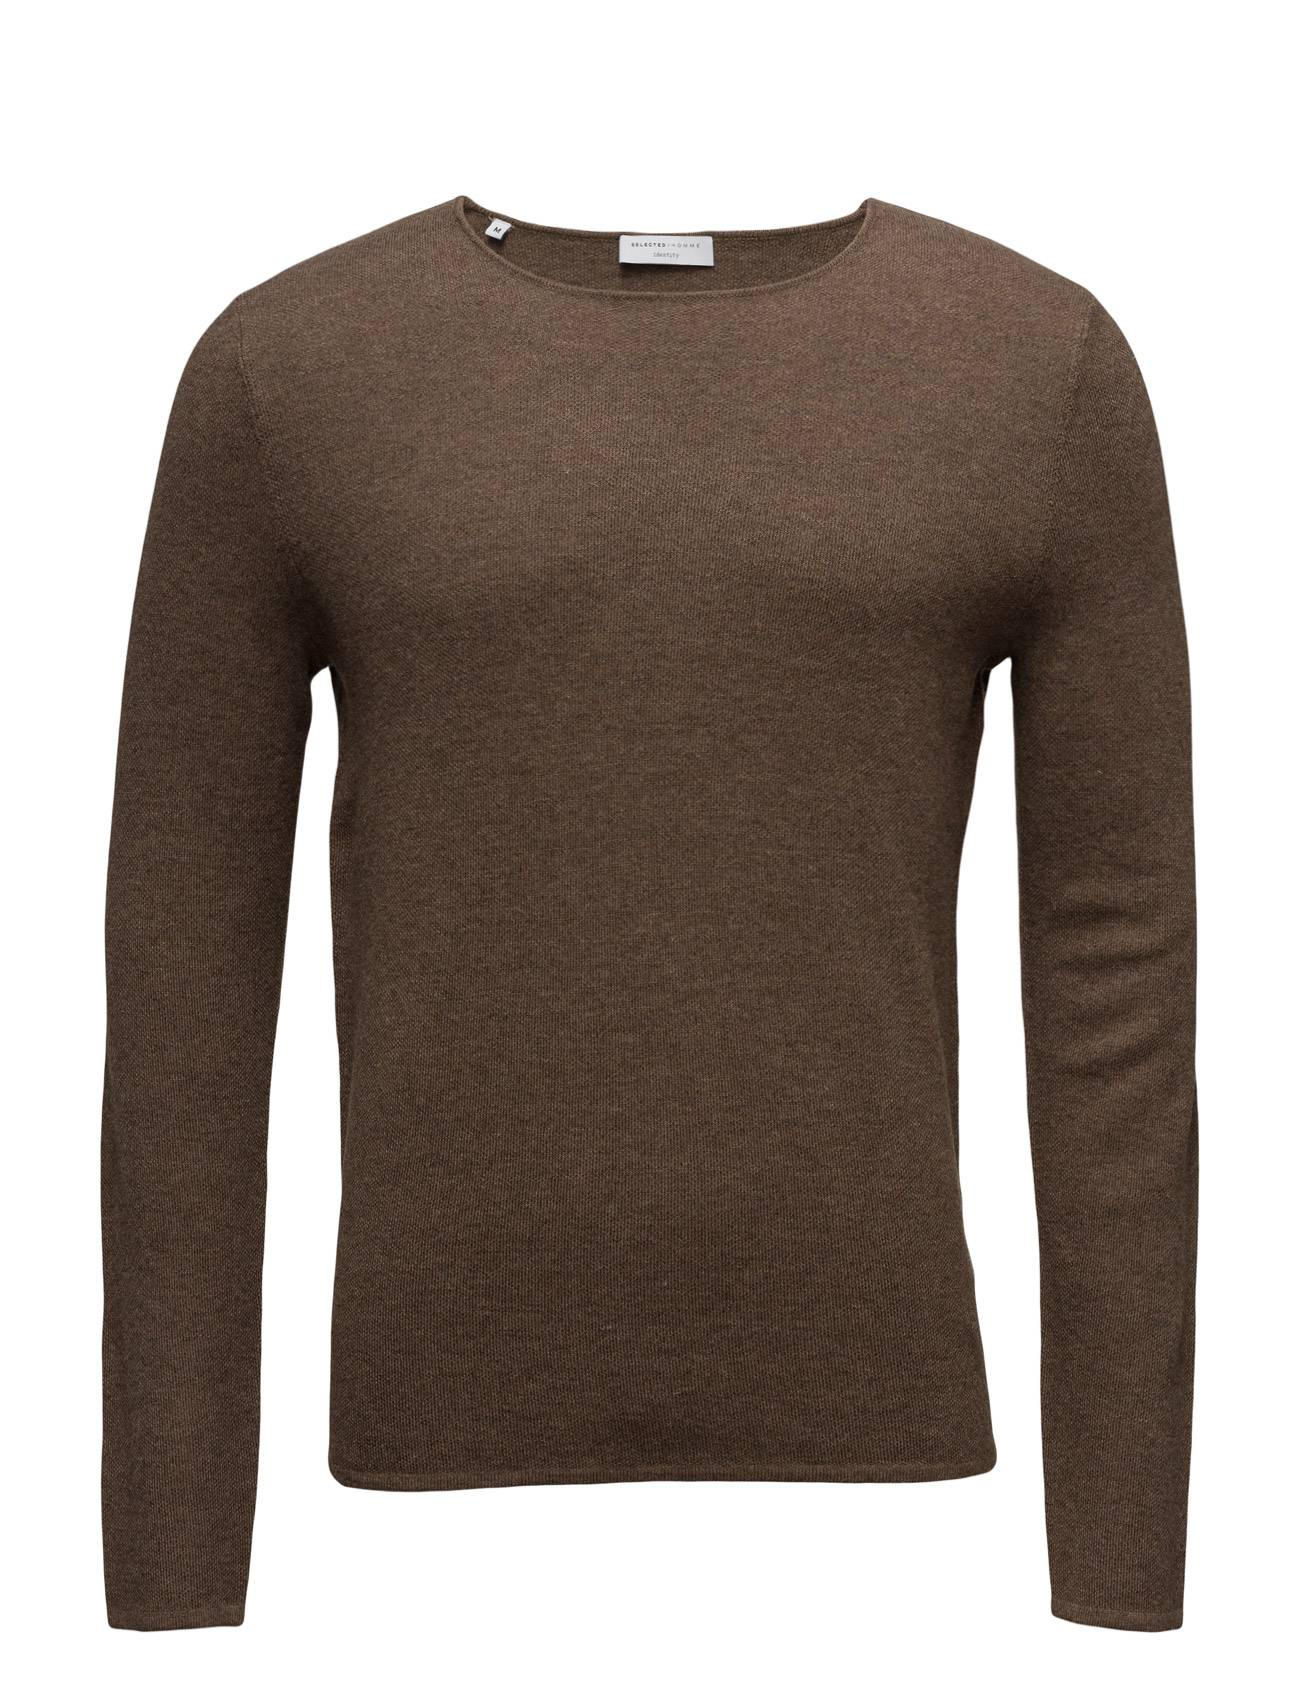 Selected Homme Shdaustin Crew Neck